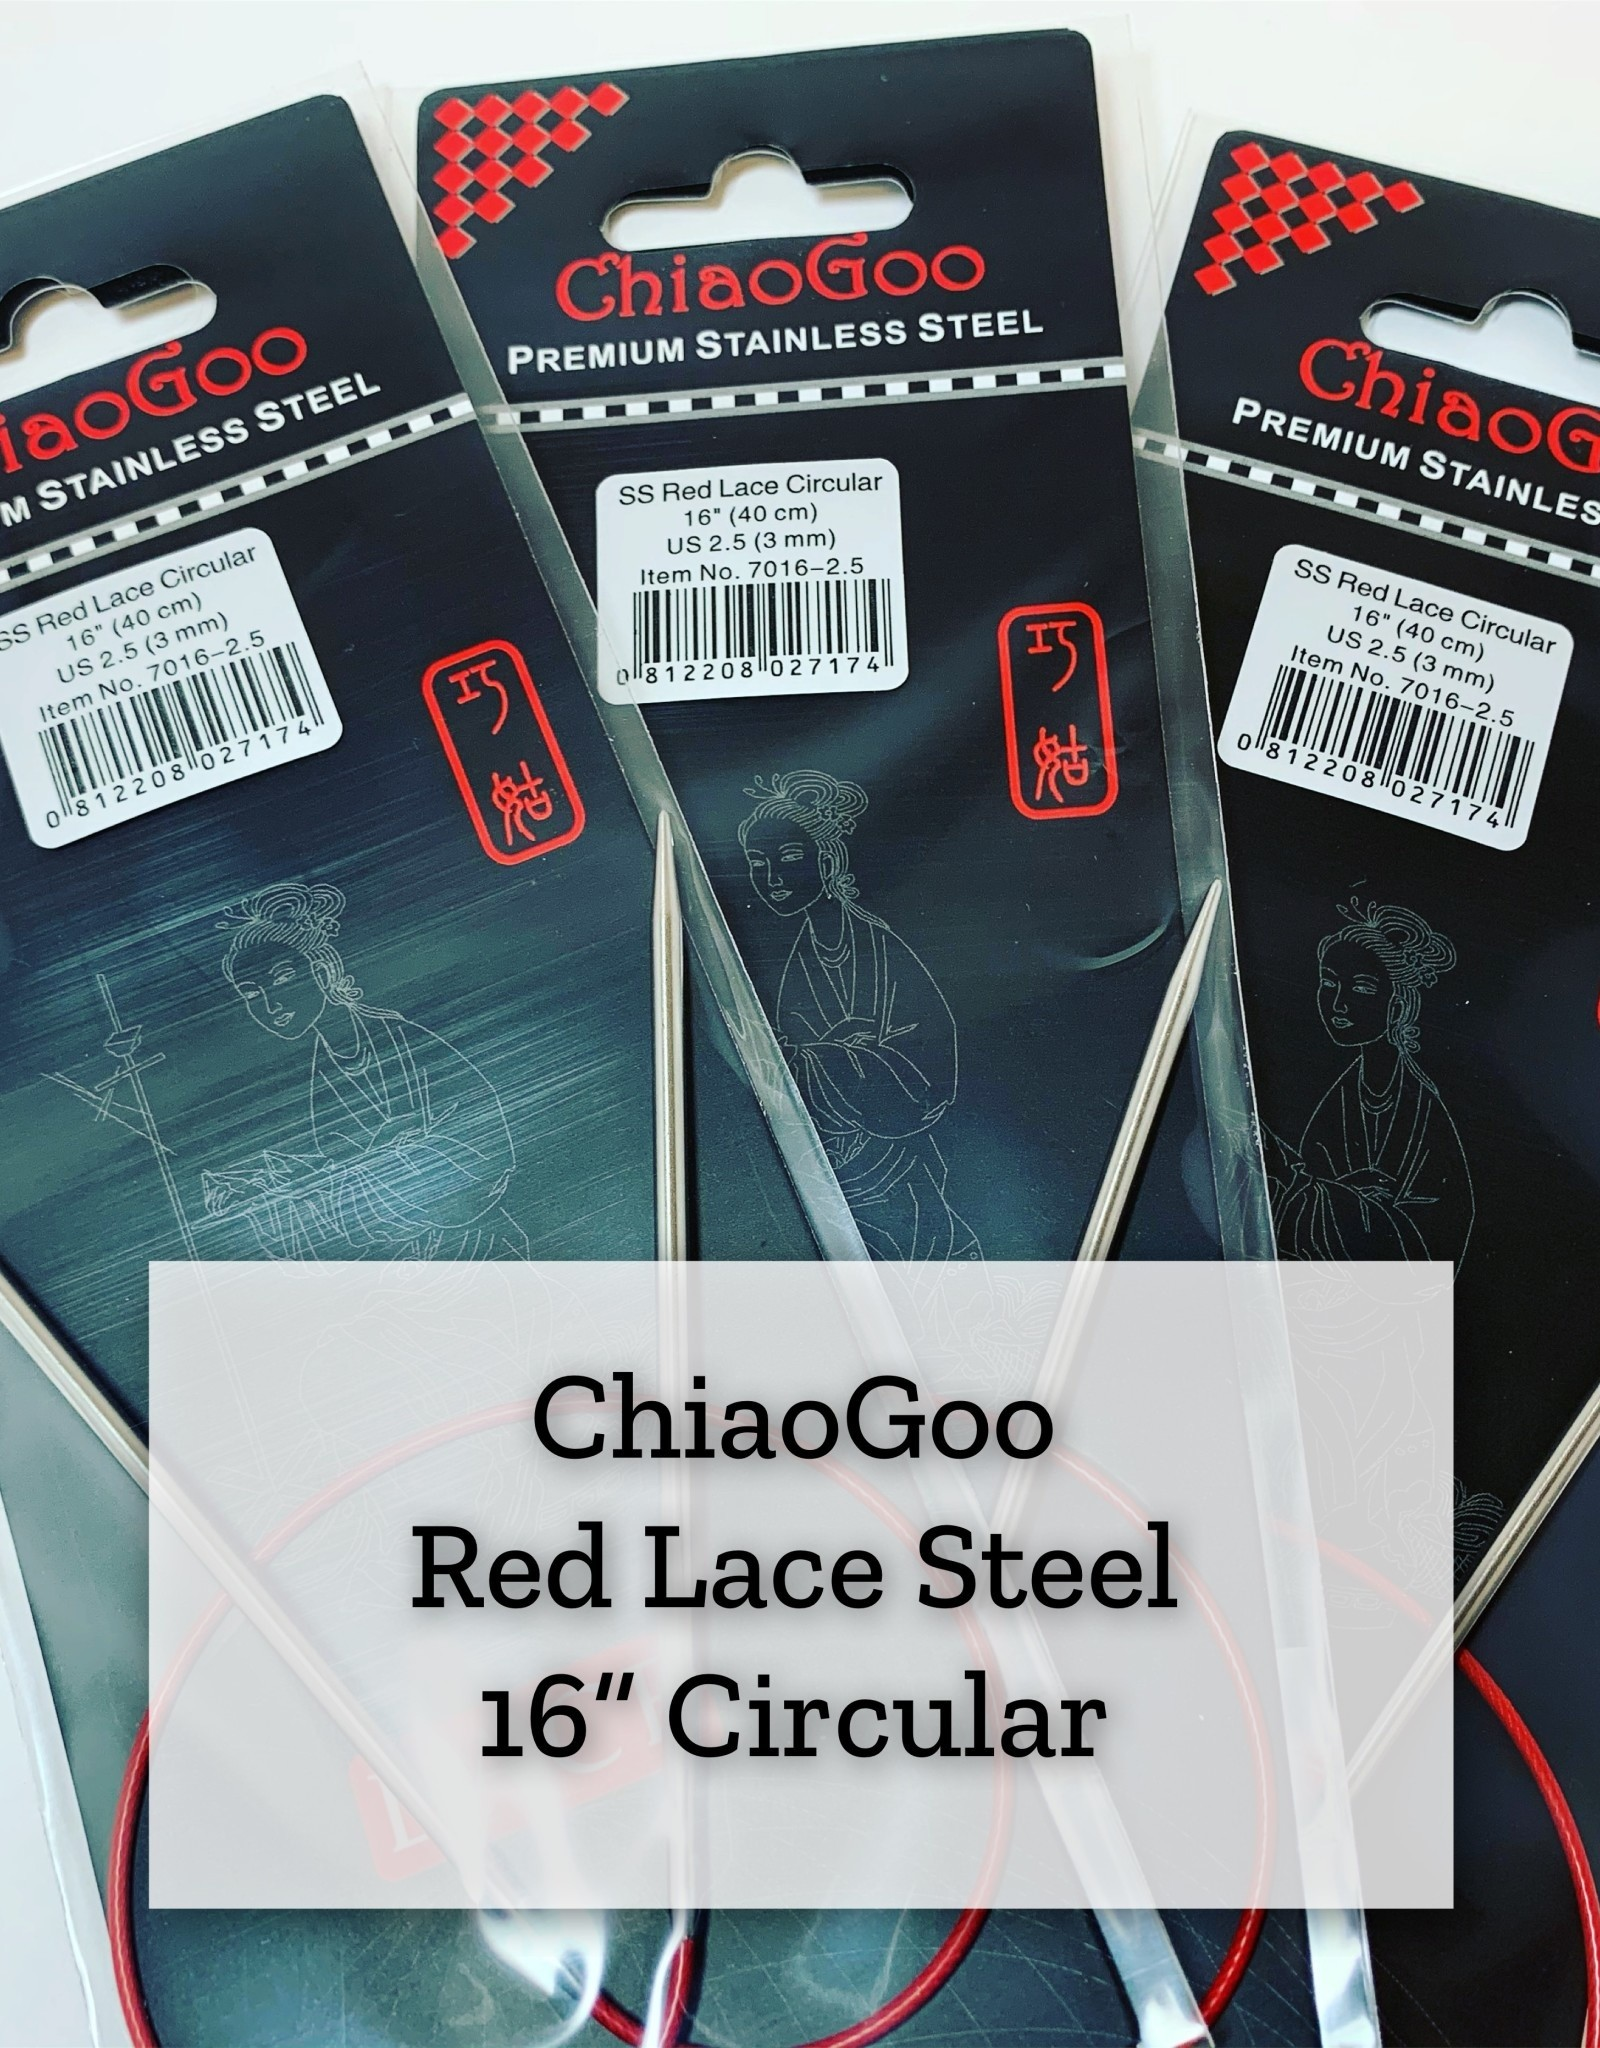 "ChiaoGoo Red Lace Steel - 16"" 3 mm"